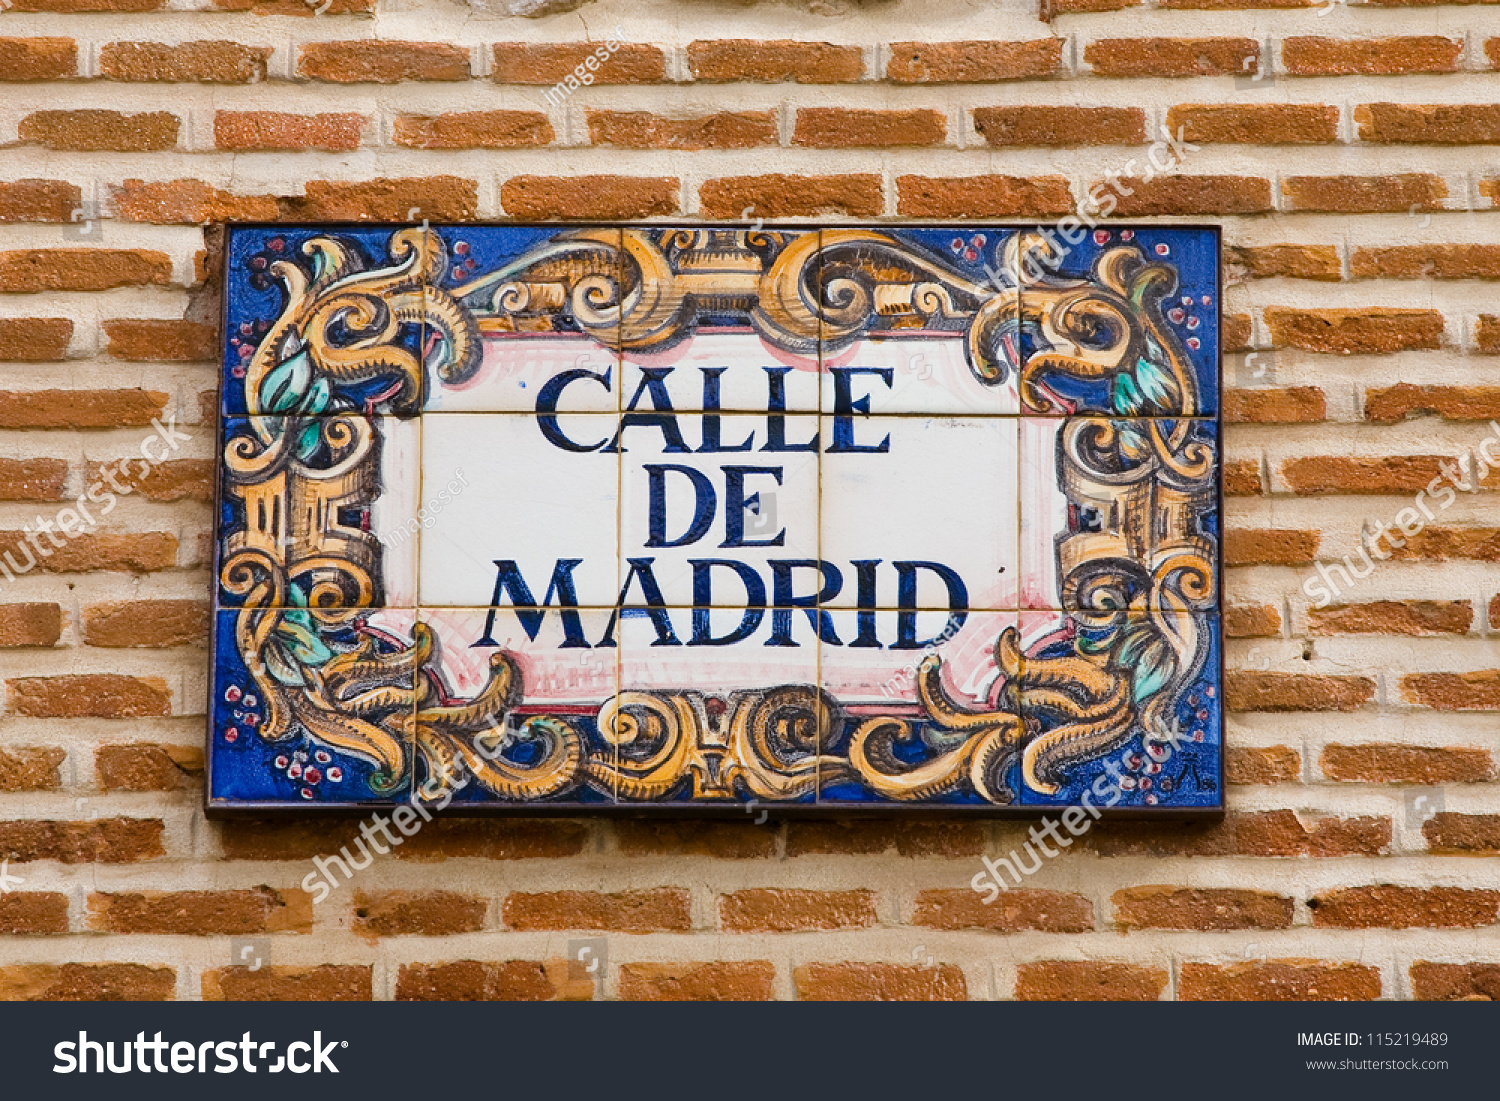 Ceramic tile madrid street name spain stock photo 115219489 a ceramic tile with madrid street name spain dailygadgetfo Gallery